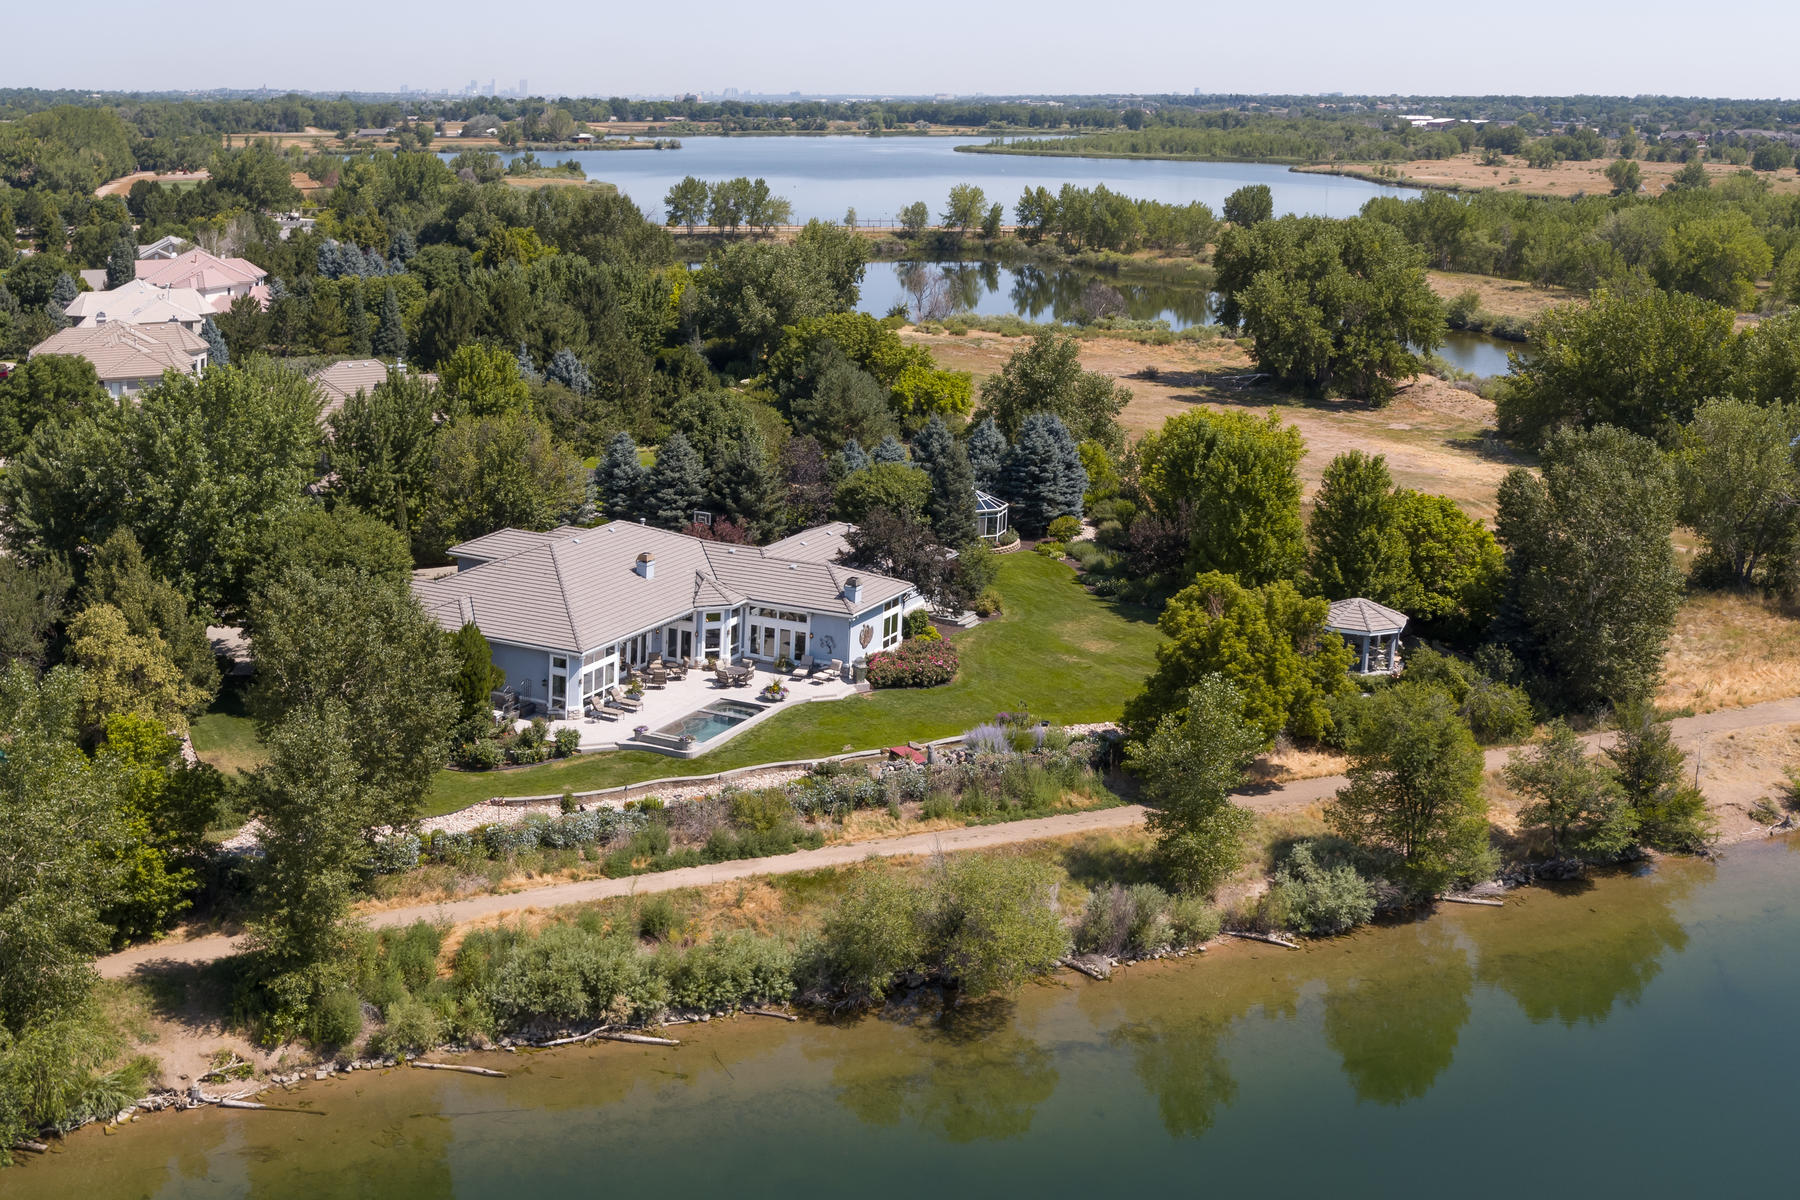 Maison unifamiliale pour l Vente à Incomparable setting overlooking park, lake and mountains beyond 7640 S Polo Ridge Dr Littleton, Colorado 80128 États-Unis